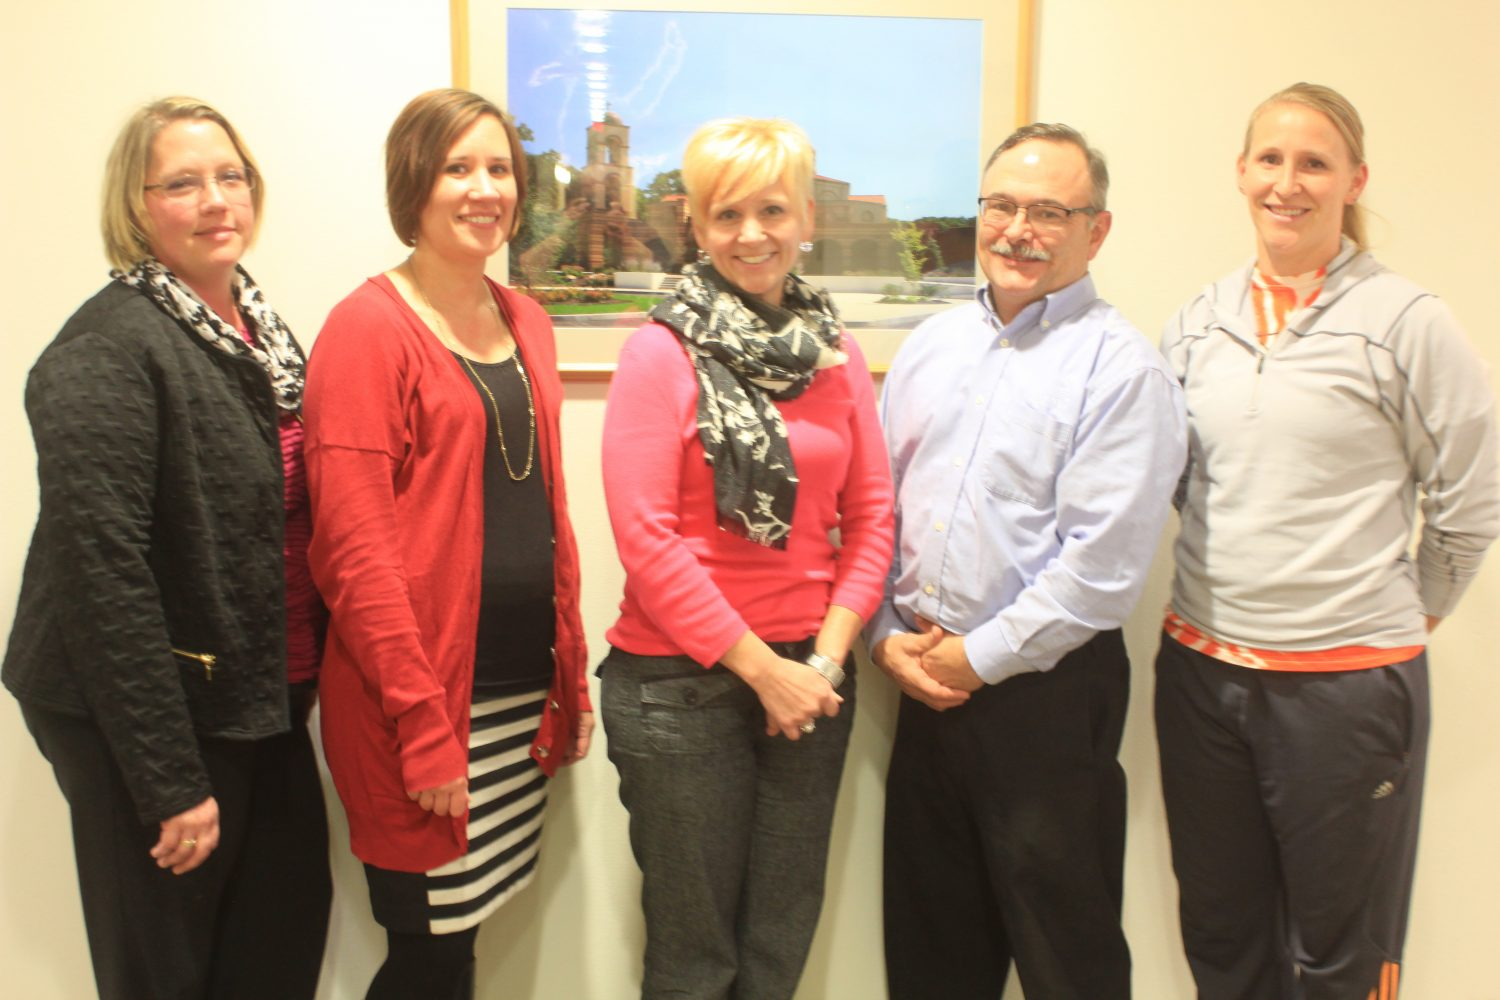 Pictured from left are Trina Pawlicki (Intellectual Disabilities-PRMS); Jaime Rannow (Intellectual Disabilities-PRMS); Dawn Schroeder-Silvela (Merrill Area Community Foundation); Pete McConnell (Technology and Engineering-PRMS); Stephanie Nelson (Phy Ed-MHS).